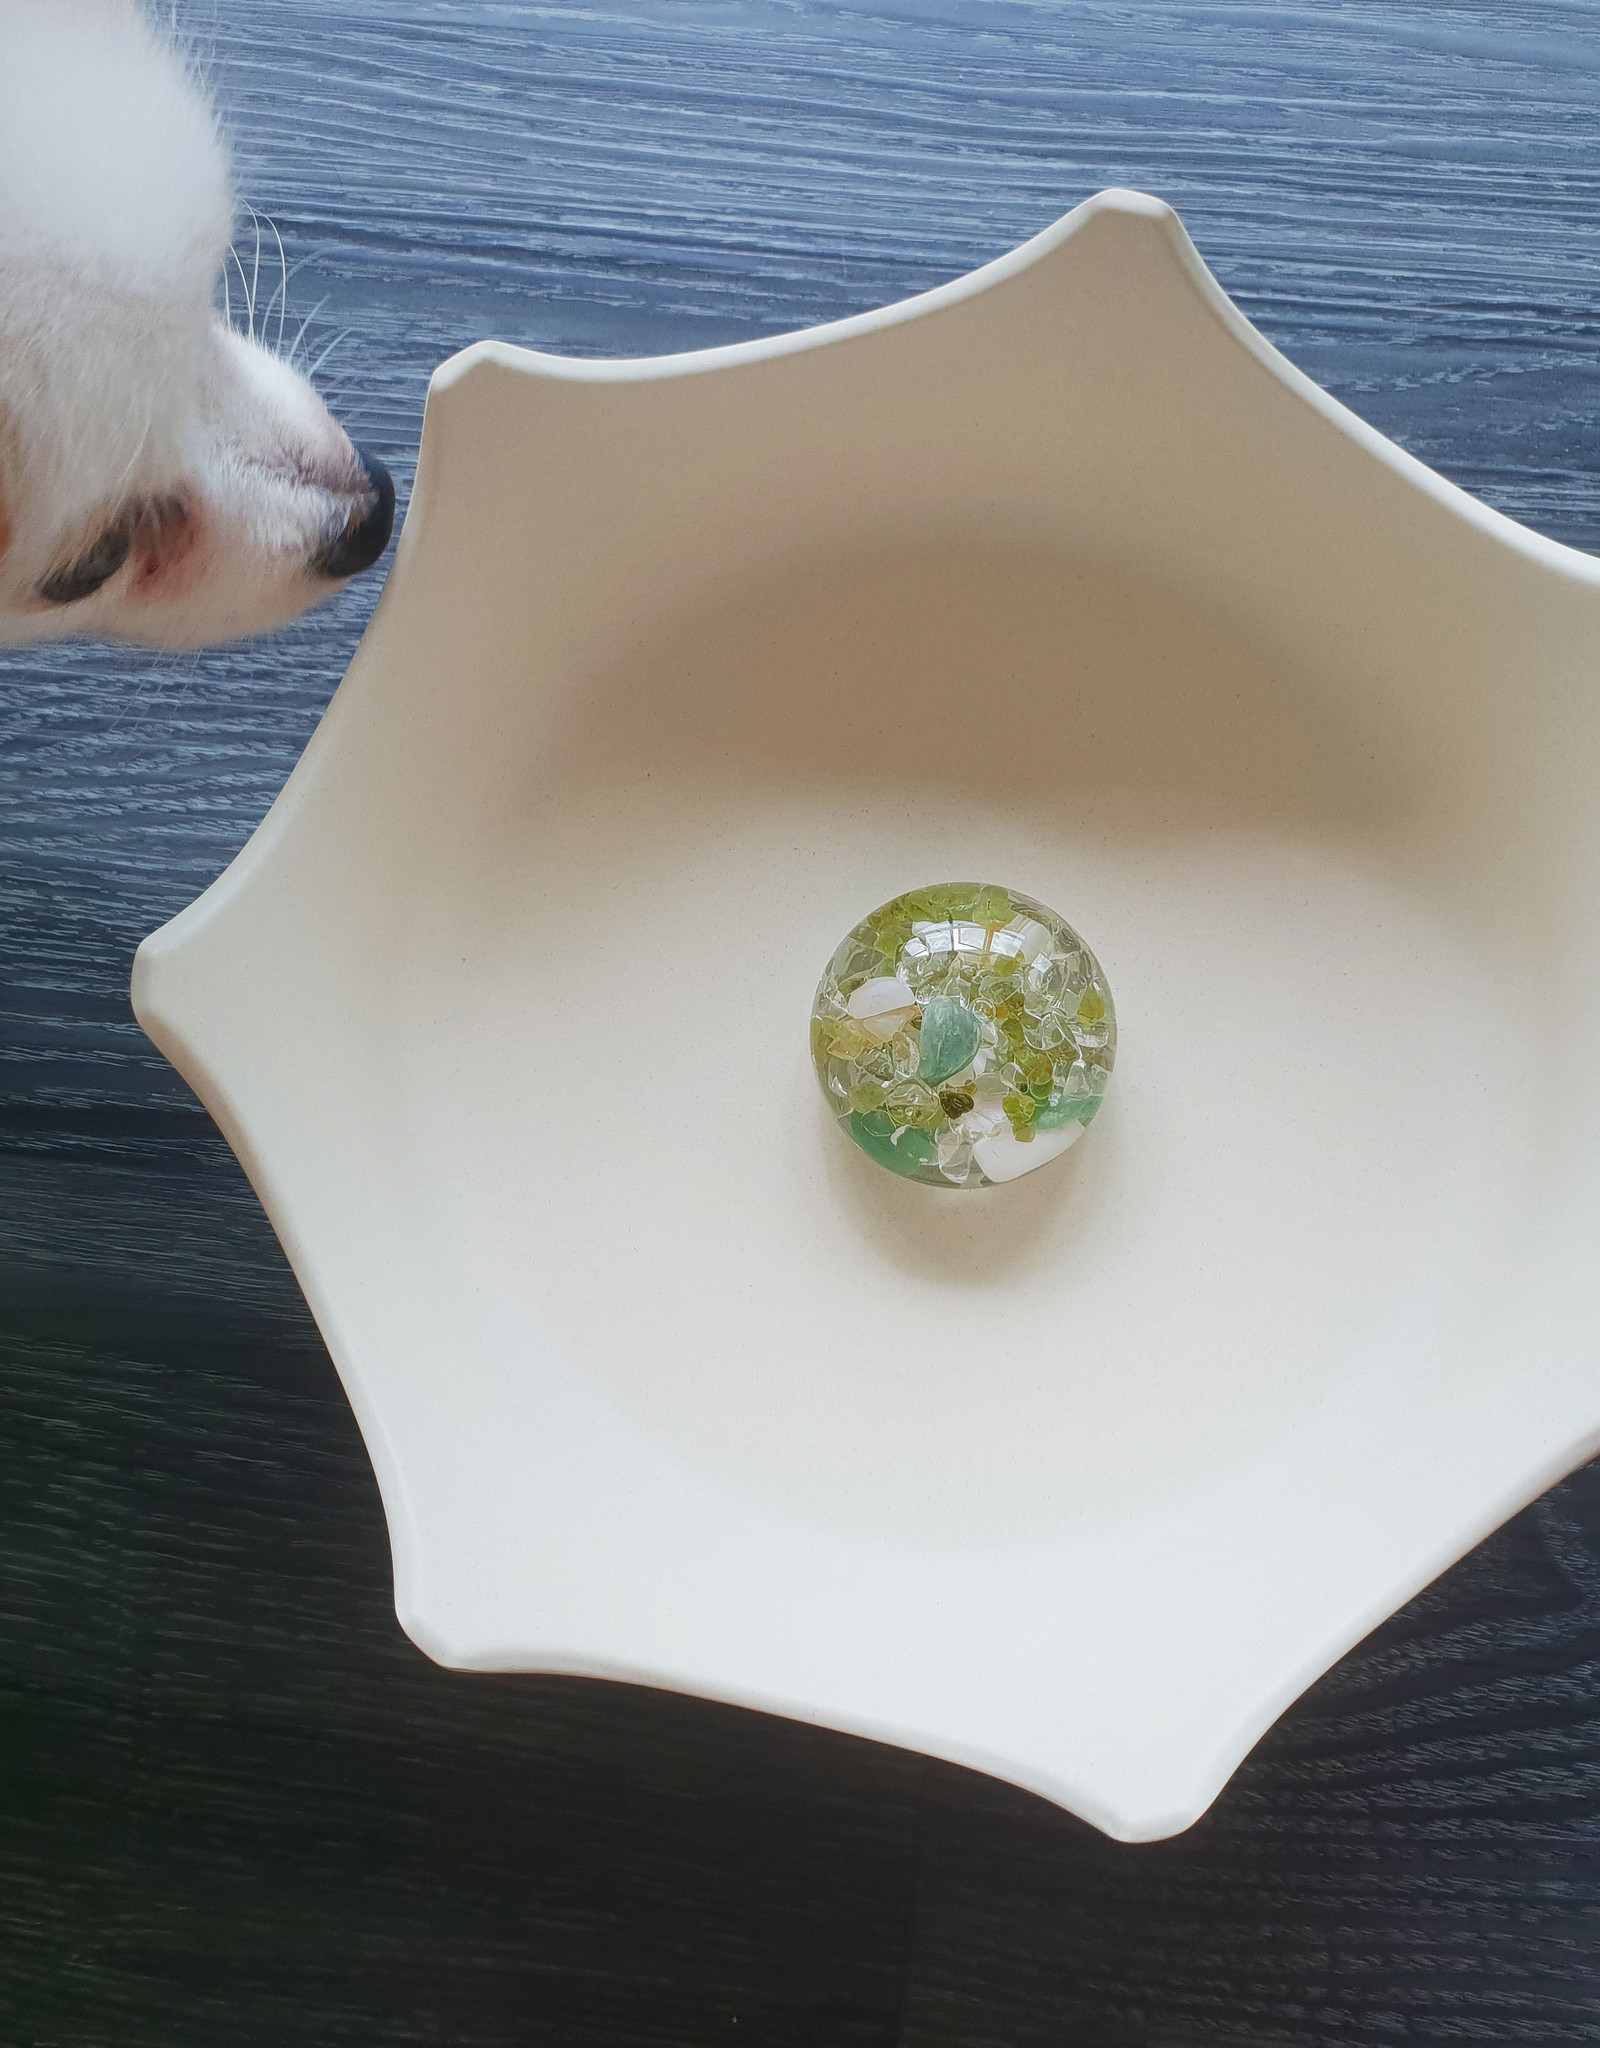 Gem Water Gem-Water CrownJuwel Pet Bowl by VitaJuwel in Natural White